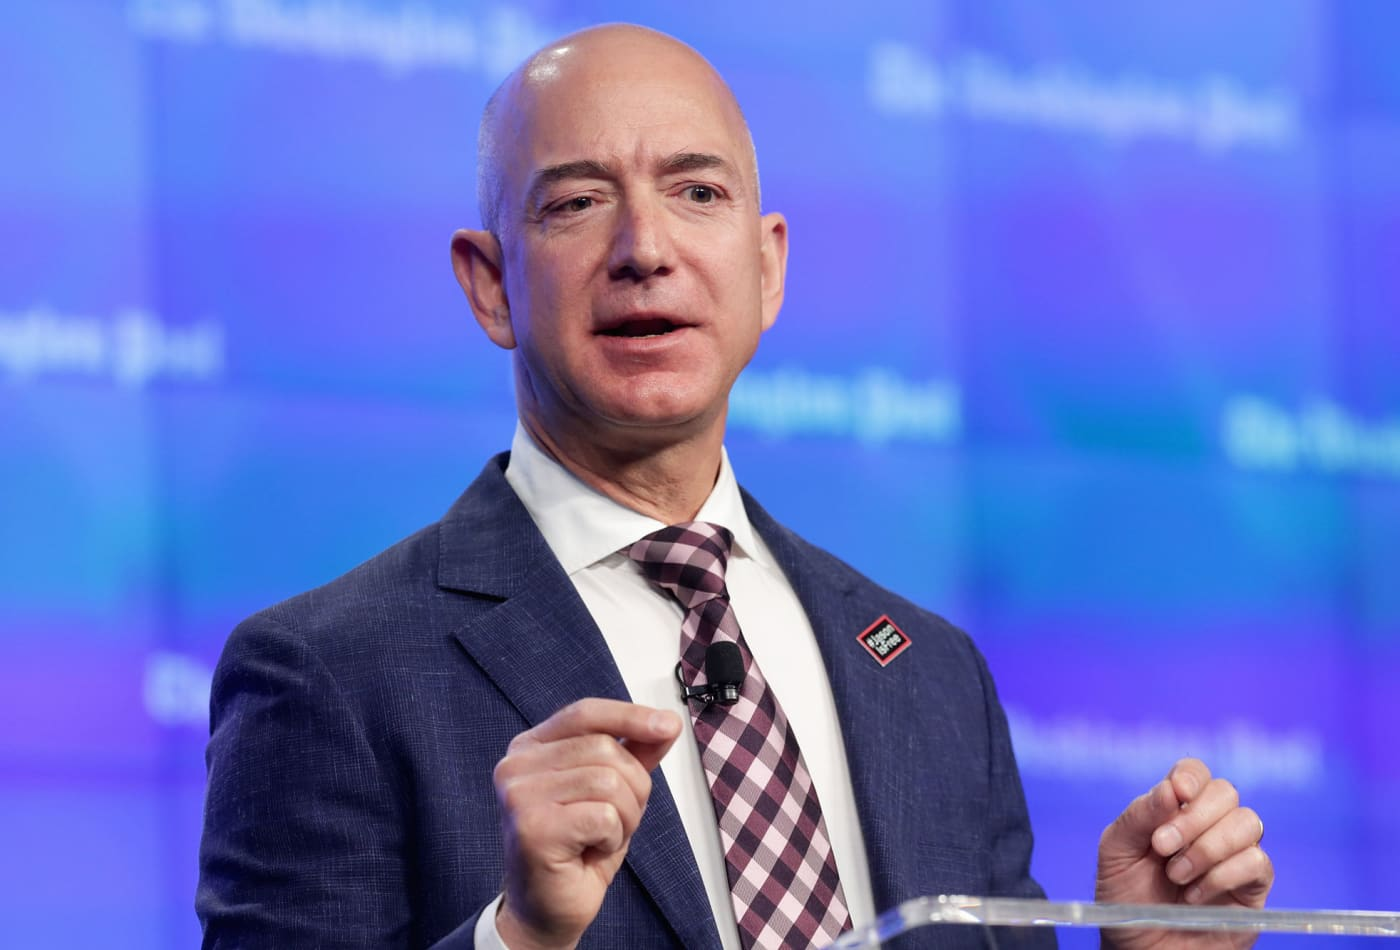 The 'aha' moment that changed Jeff Bezos' life